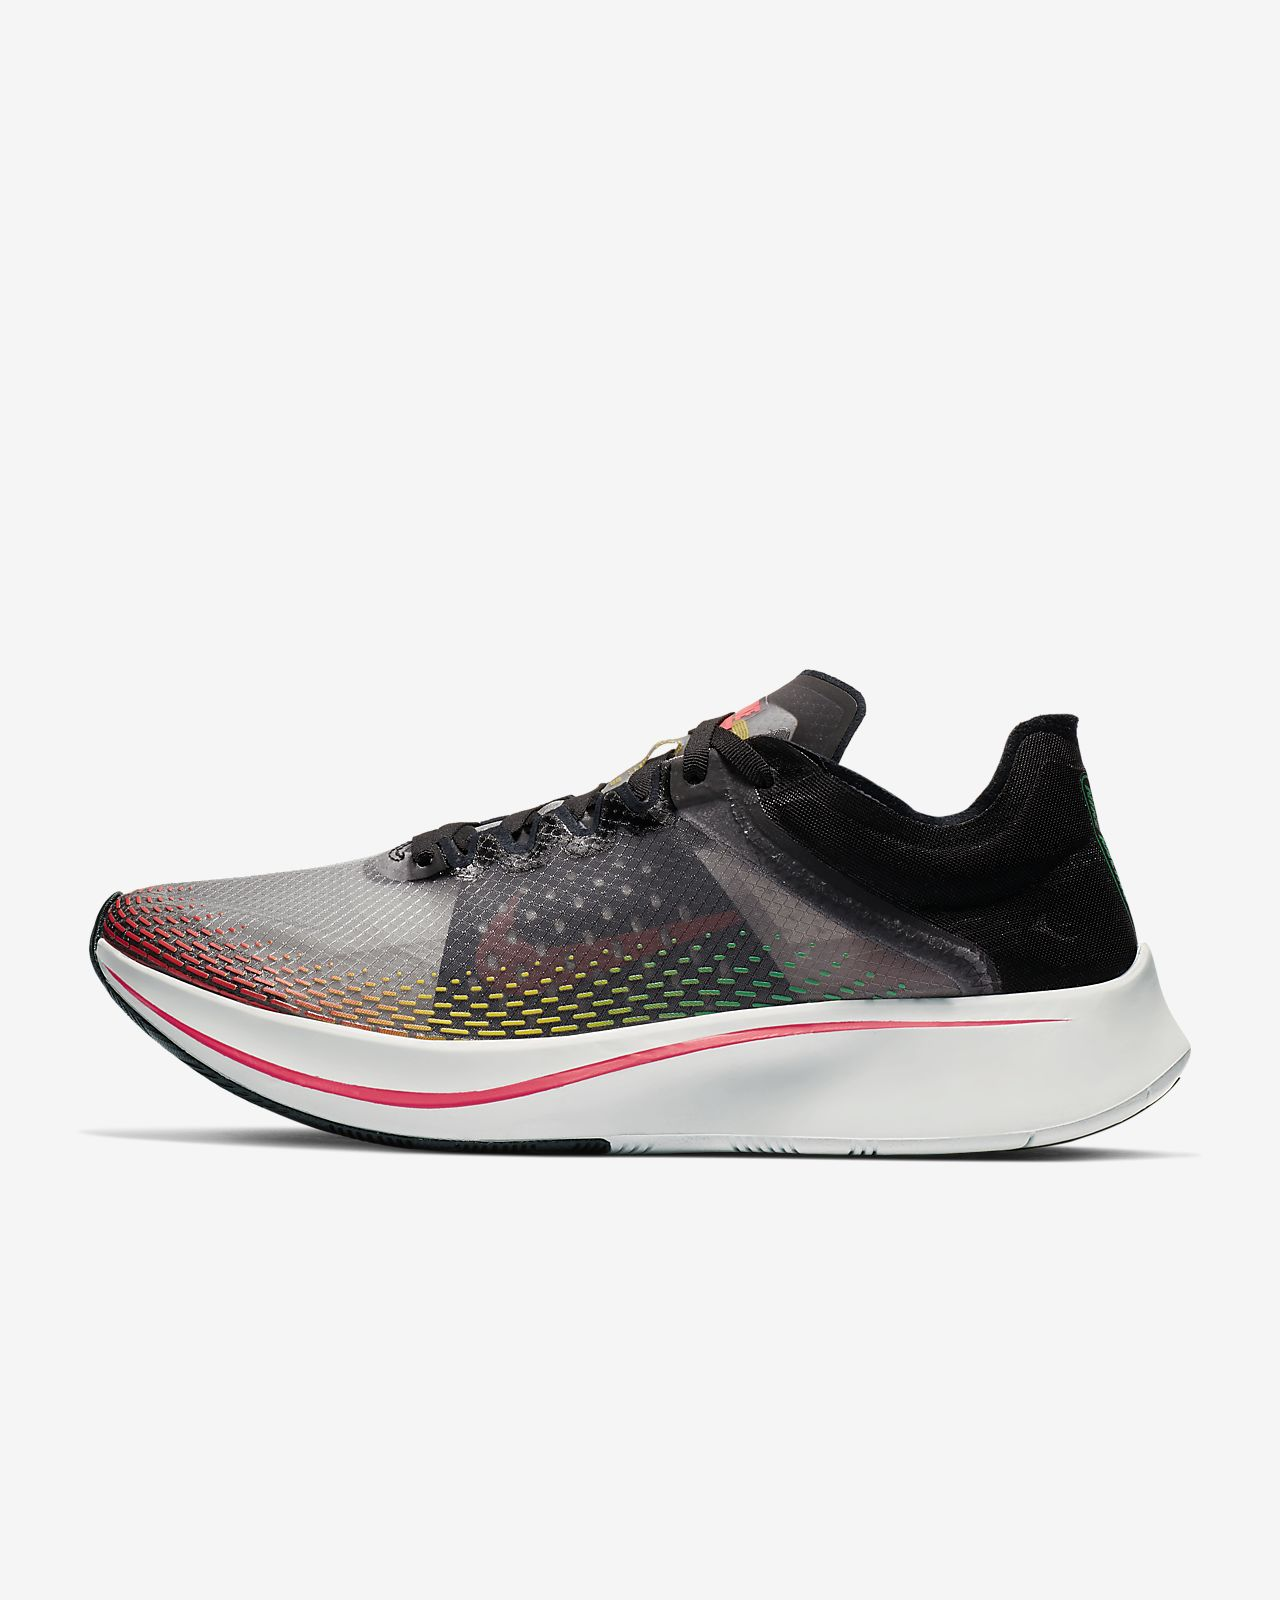 on sale 62139 14715 ... Nike Zoom Fly SP Fast Running Shoe